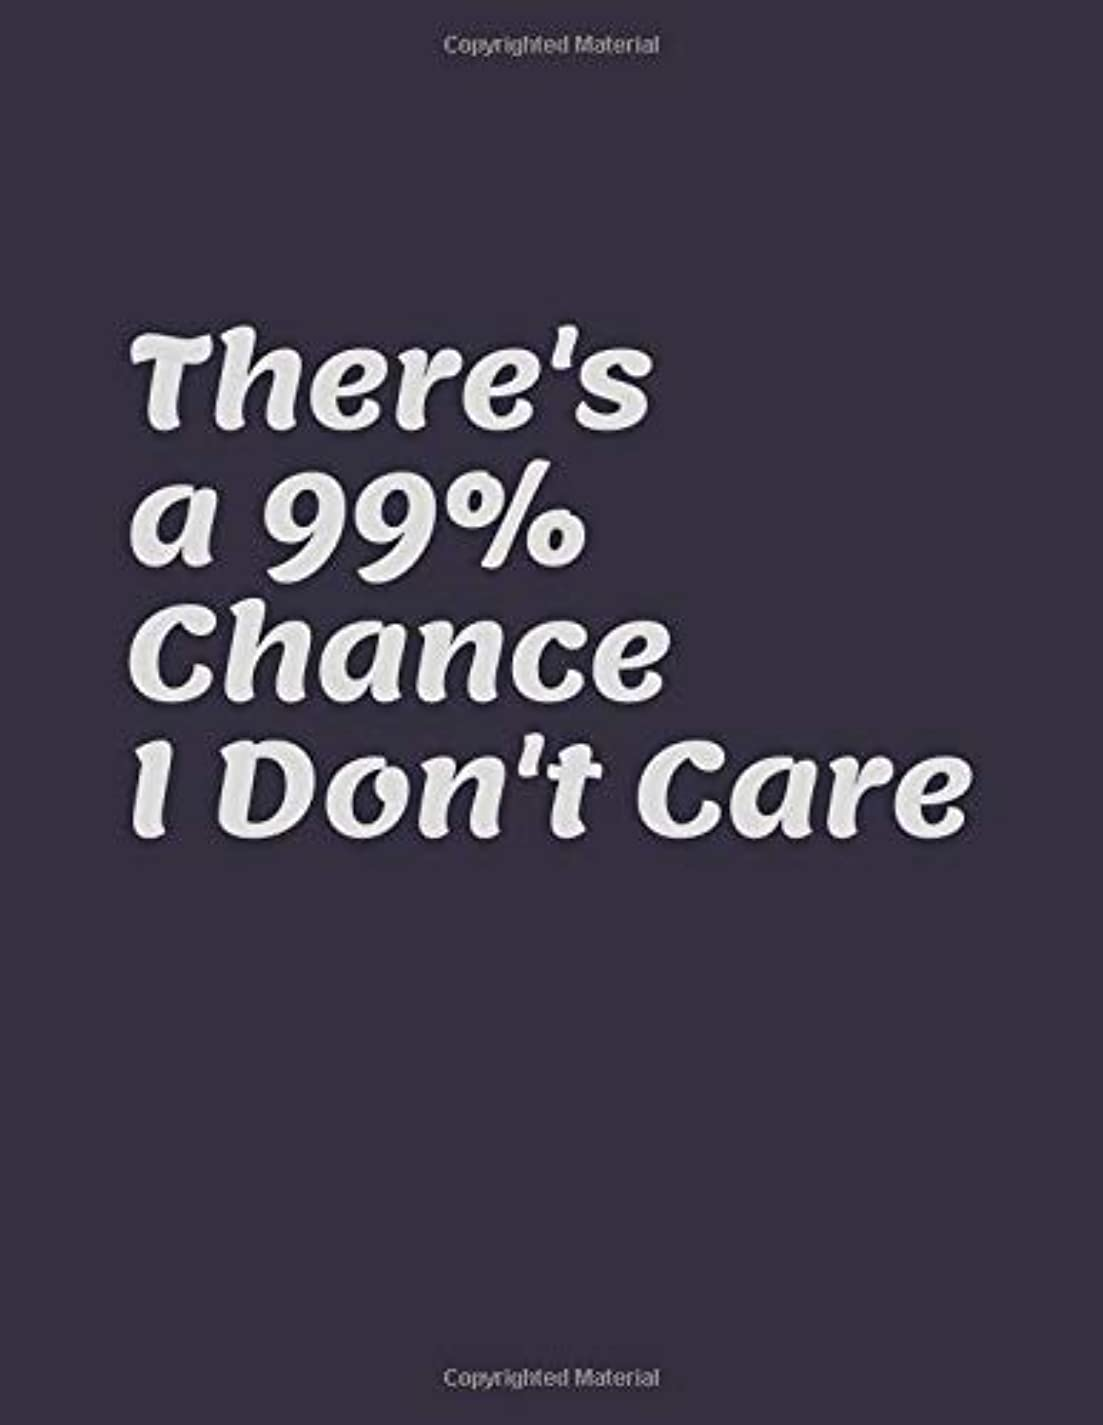 チャペル特に開業医There's a 99% Chance I Don't Care.: Funny Gag Gift, Humor Notebook, Joke Journal, Funny Gift (110 pages, unlined, 8.5 x 11)